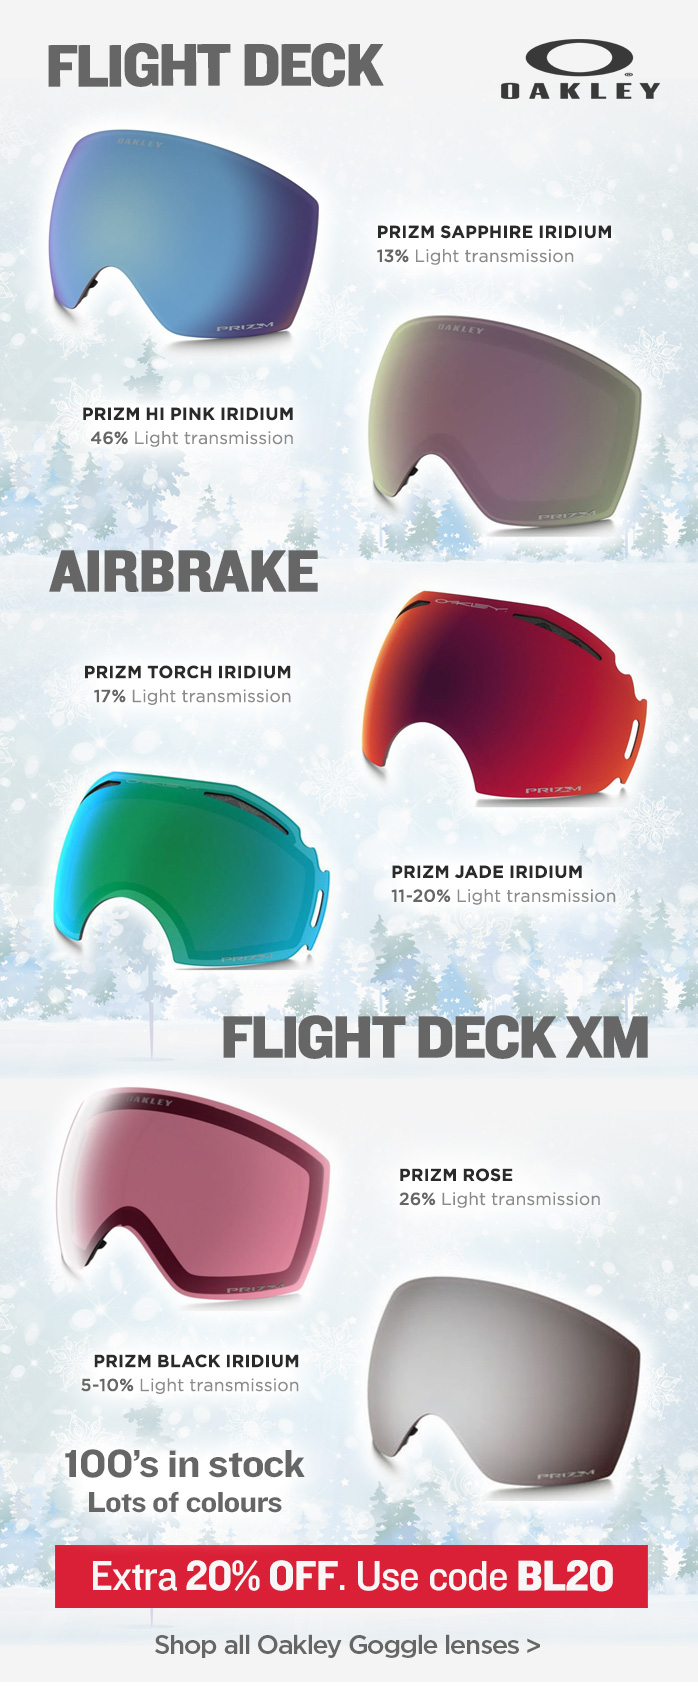 Replacement Oakley Goggle Lenses